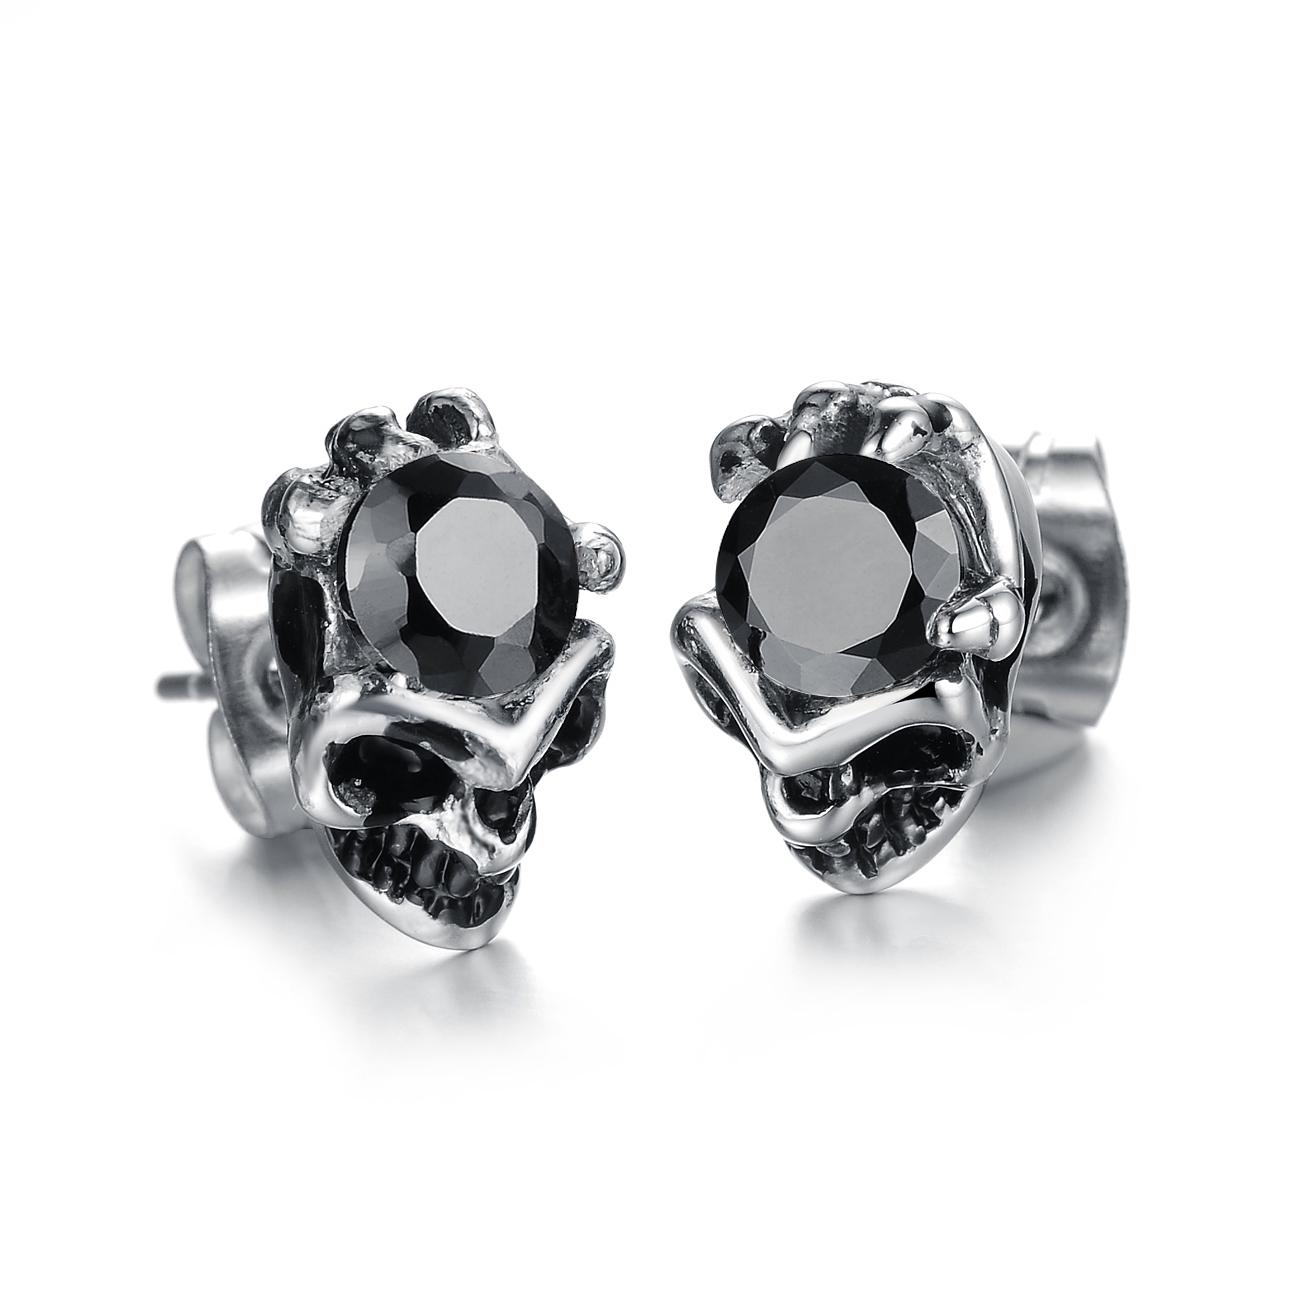 788a6c3ec 2019 2106 New Arrival Top Quality Skull Men Stud Earring Set With Diamond  Persionality Male Jewelry N277H From Lilj, $9.05 | DHgate.Com